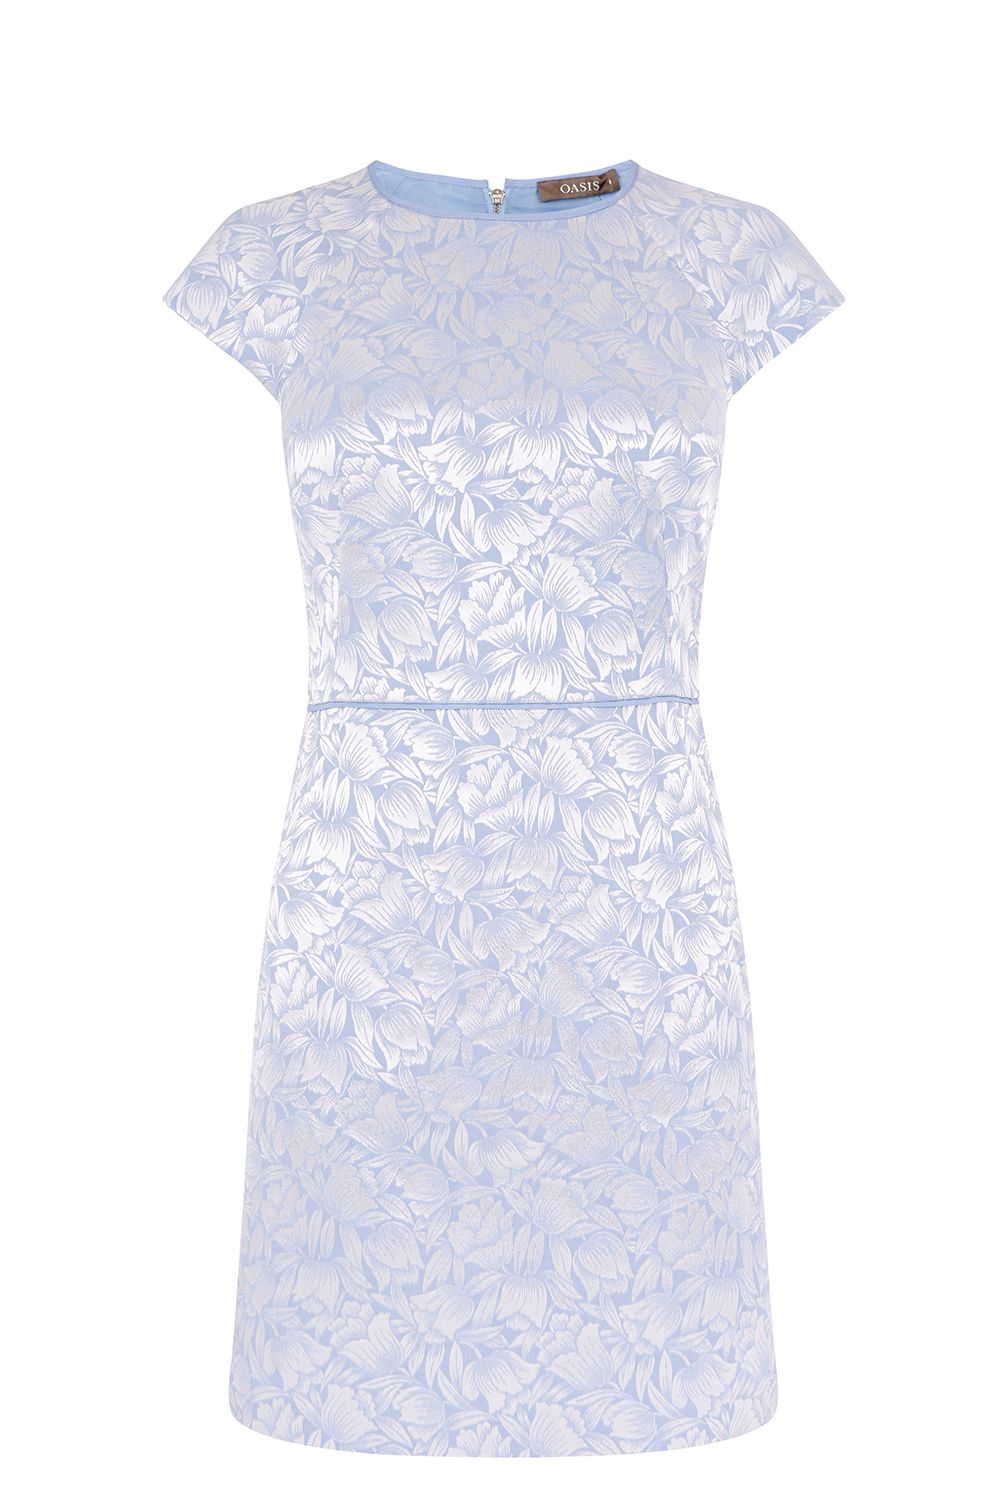 Oasis JACQUARD SHIFT DRESS, Multi-Coloured